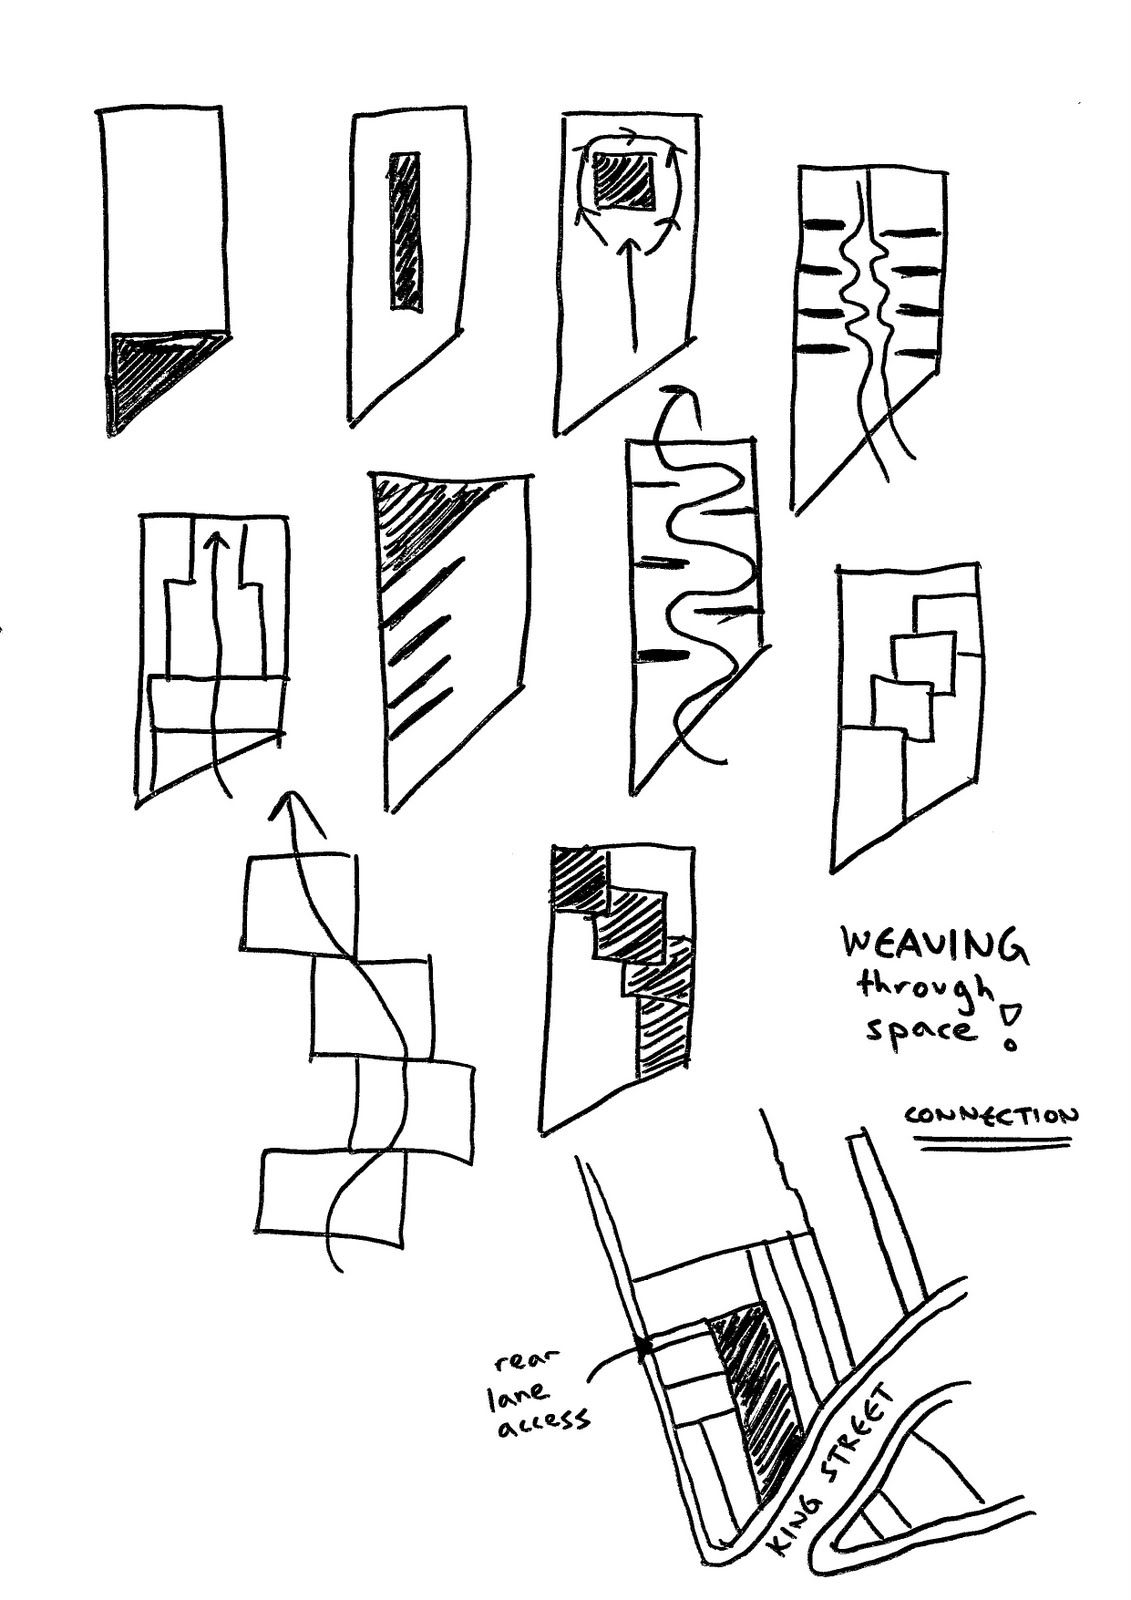 Circulation Sketchs Architecture Concept Drawings Plan Museum Parti Diagram Site